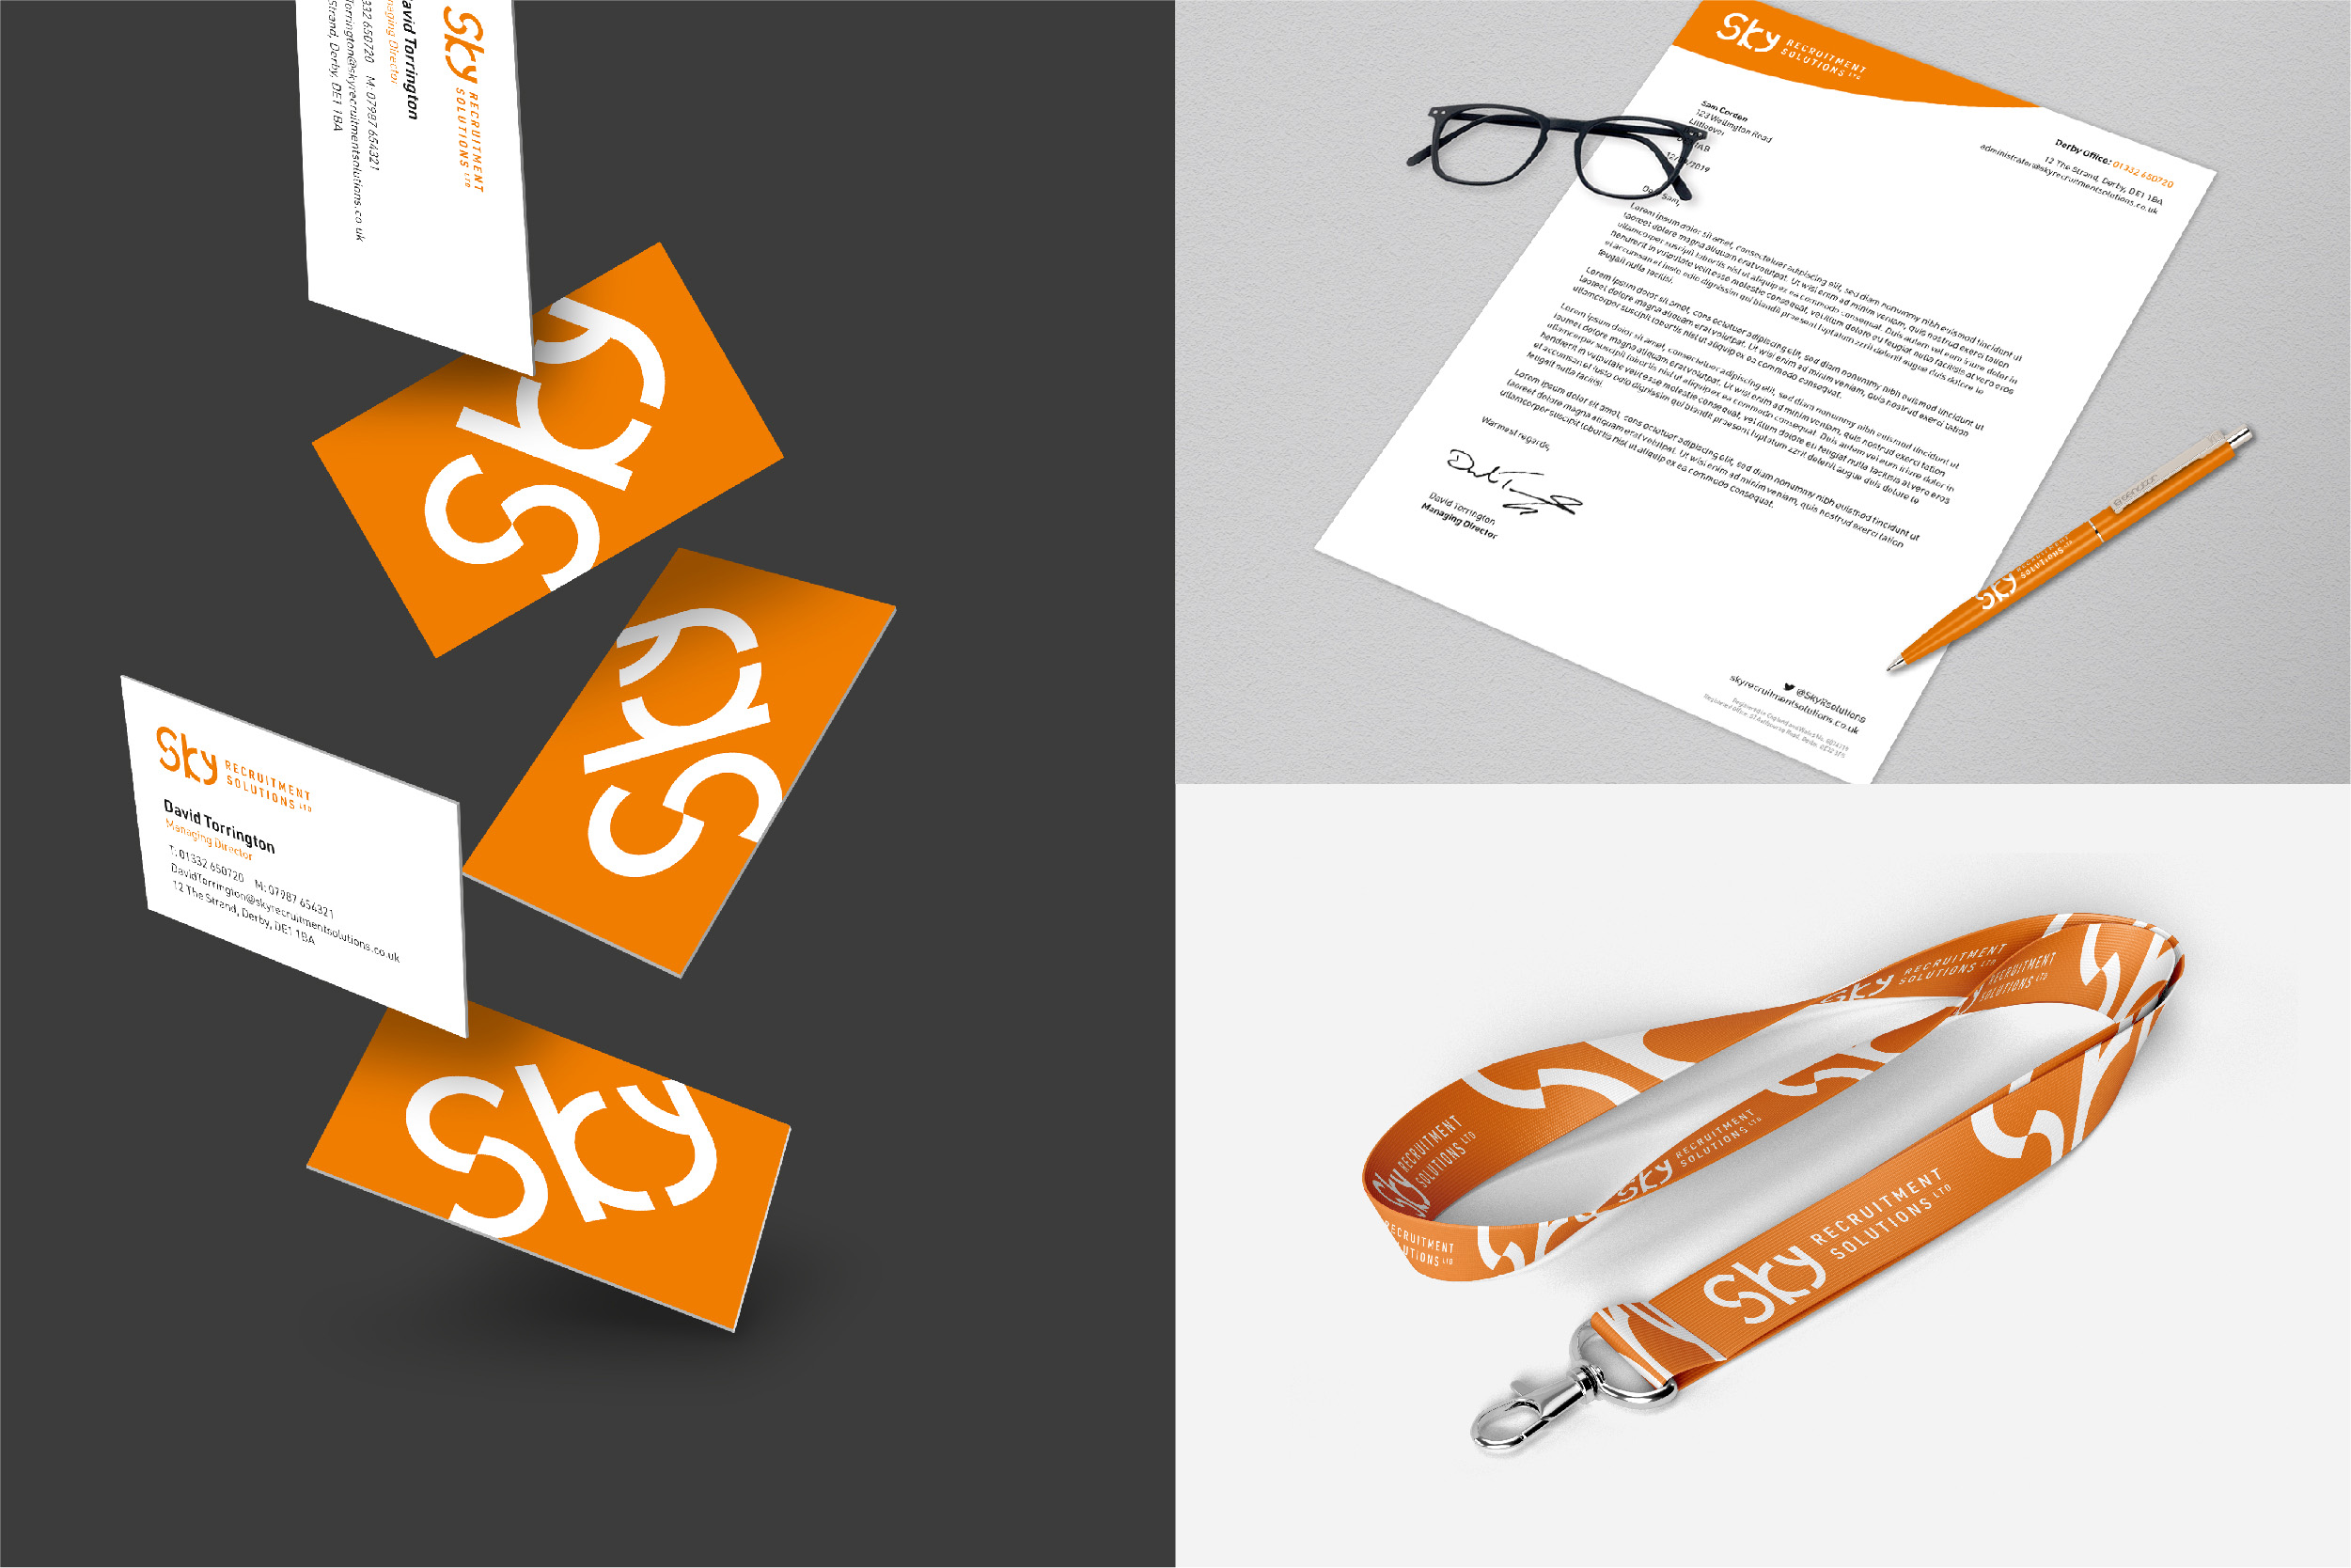 Sky Recruitment Solutions Stationery Design